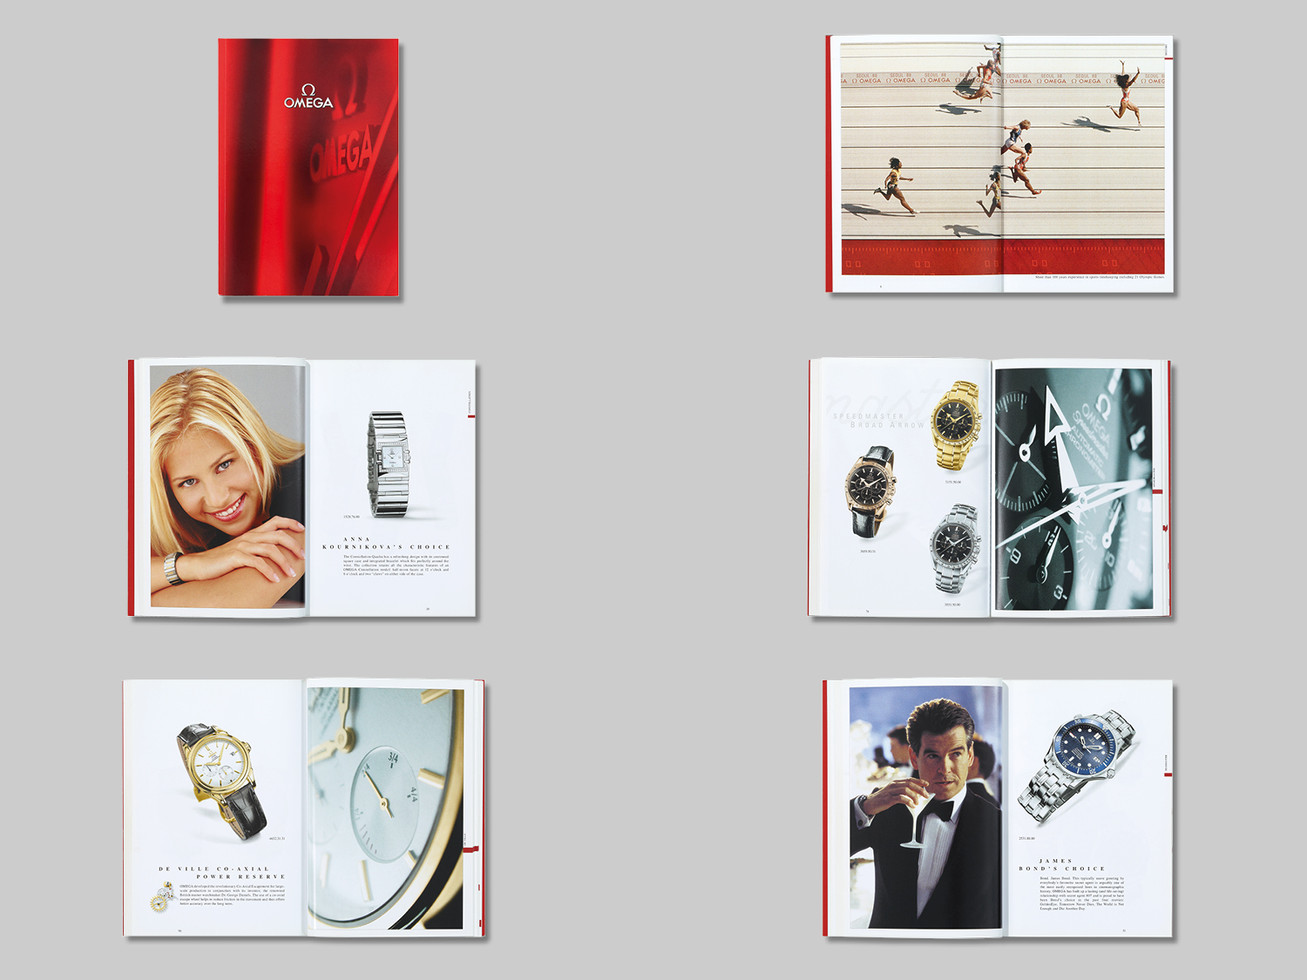 The Collection Catalog 2003